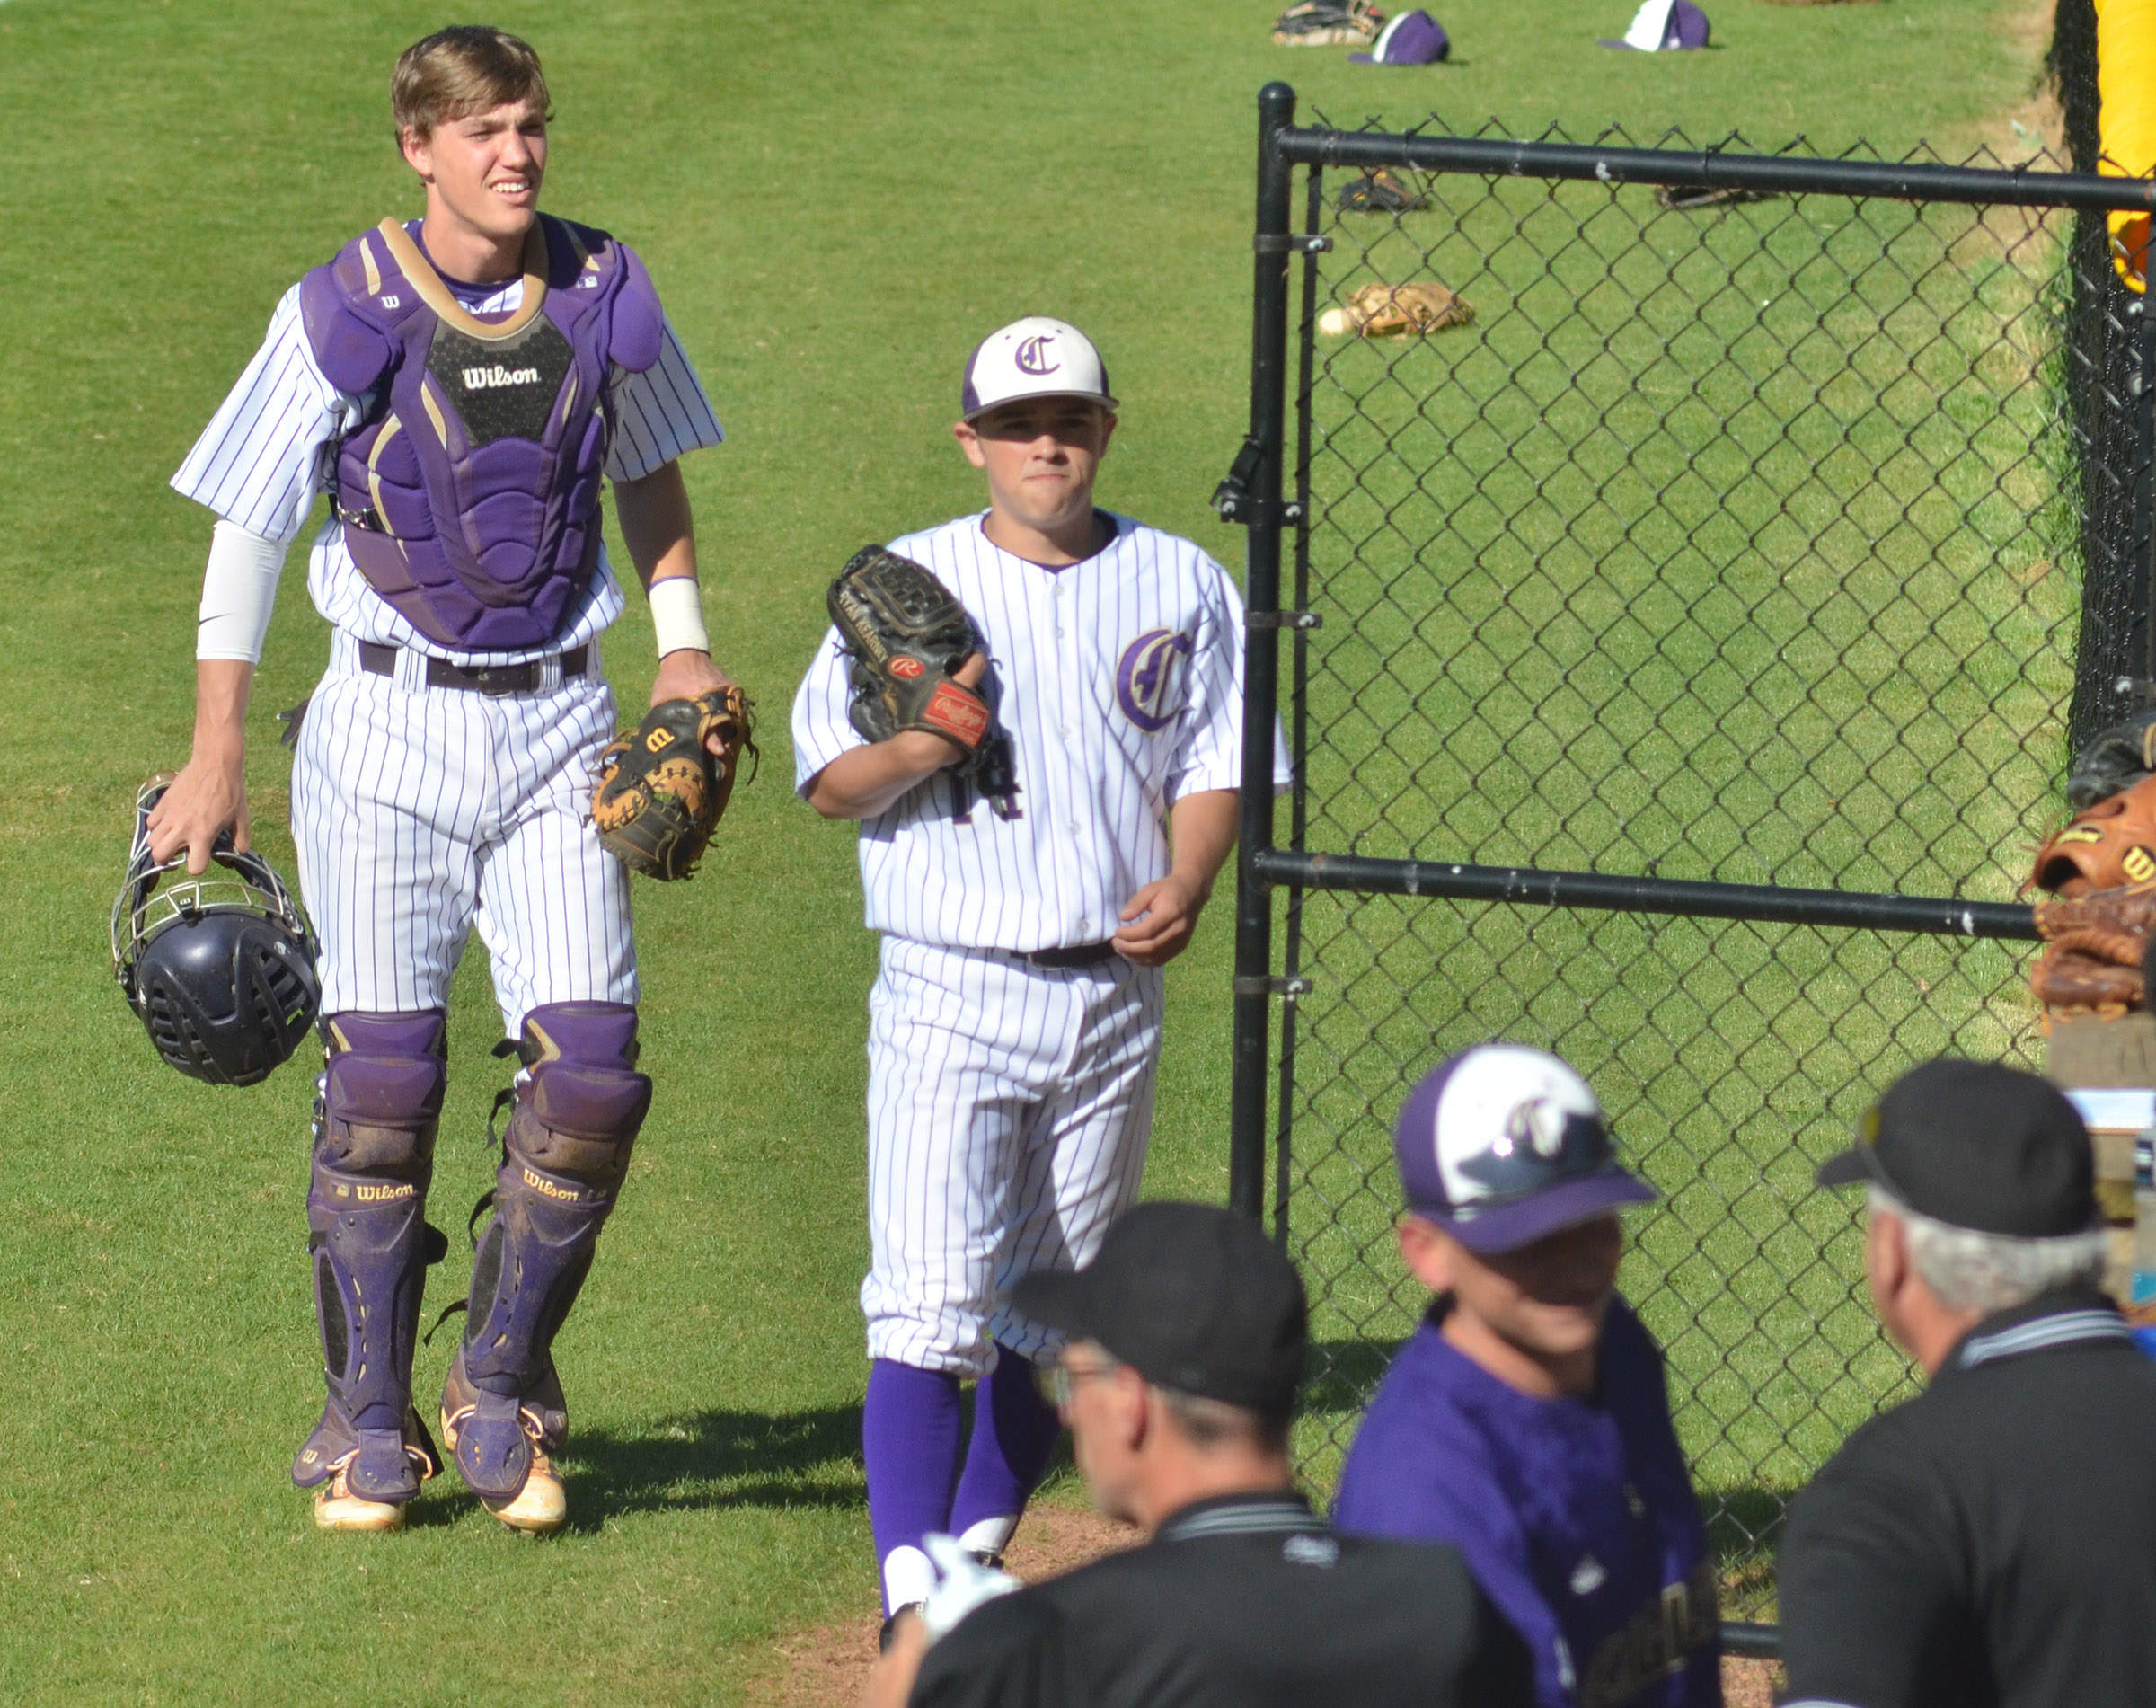 CHS senior Zack Bottoms, at left, and sophomore Ryan Kearney walk to the dugout after warming up for the game.